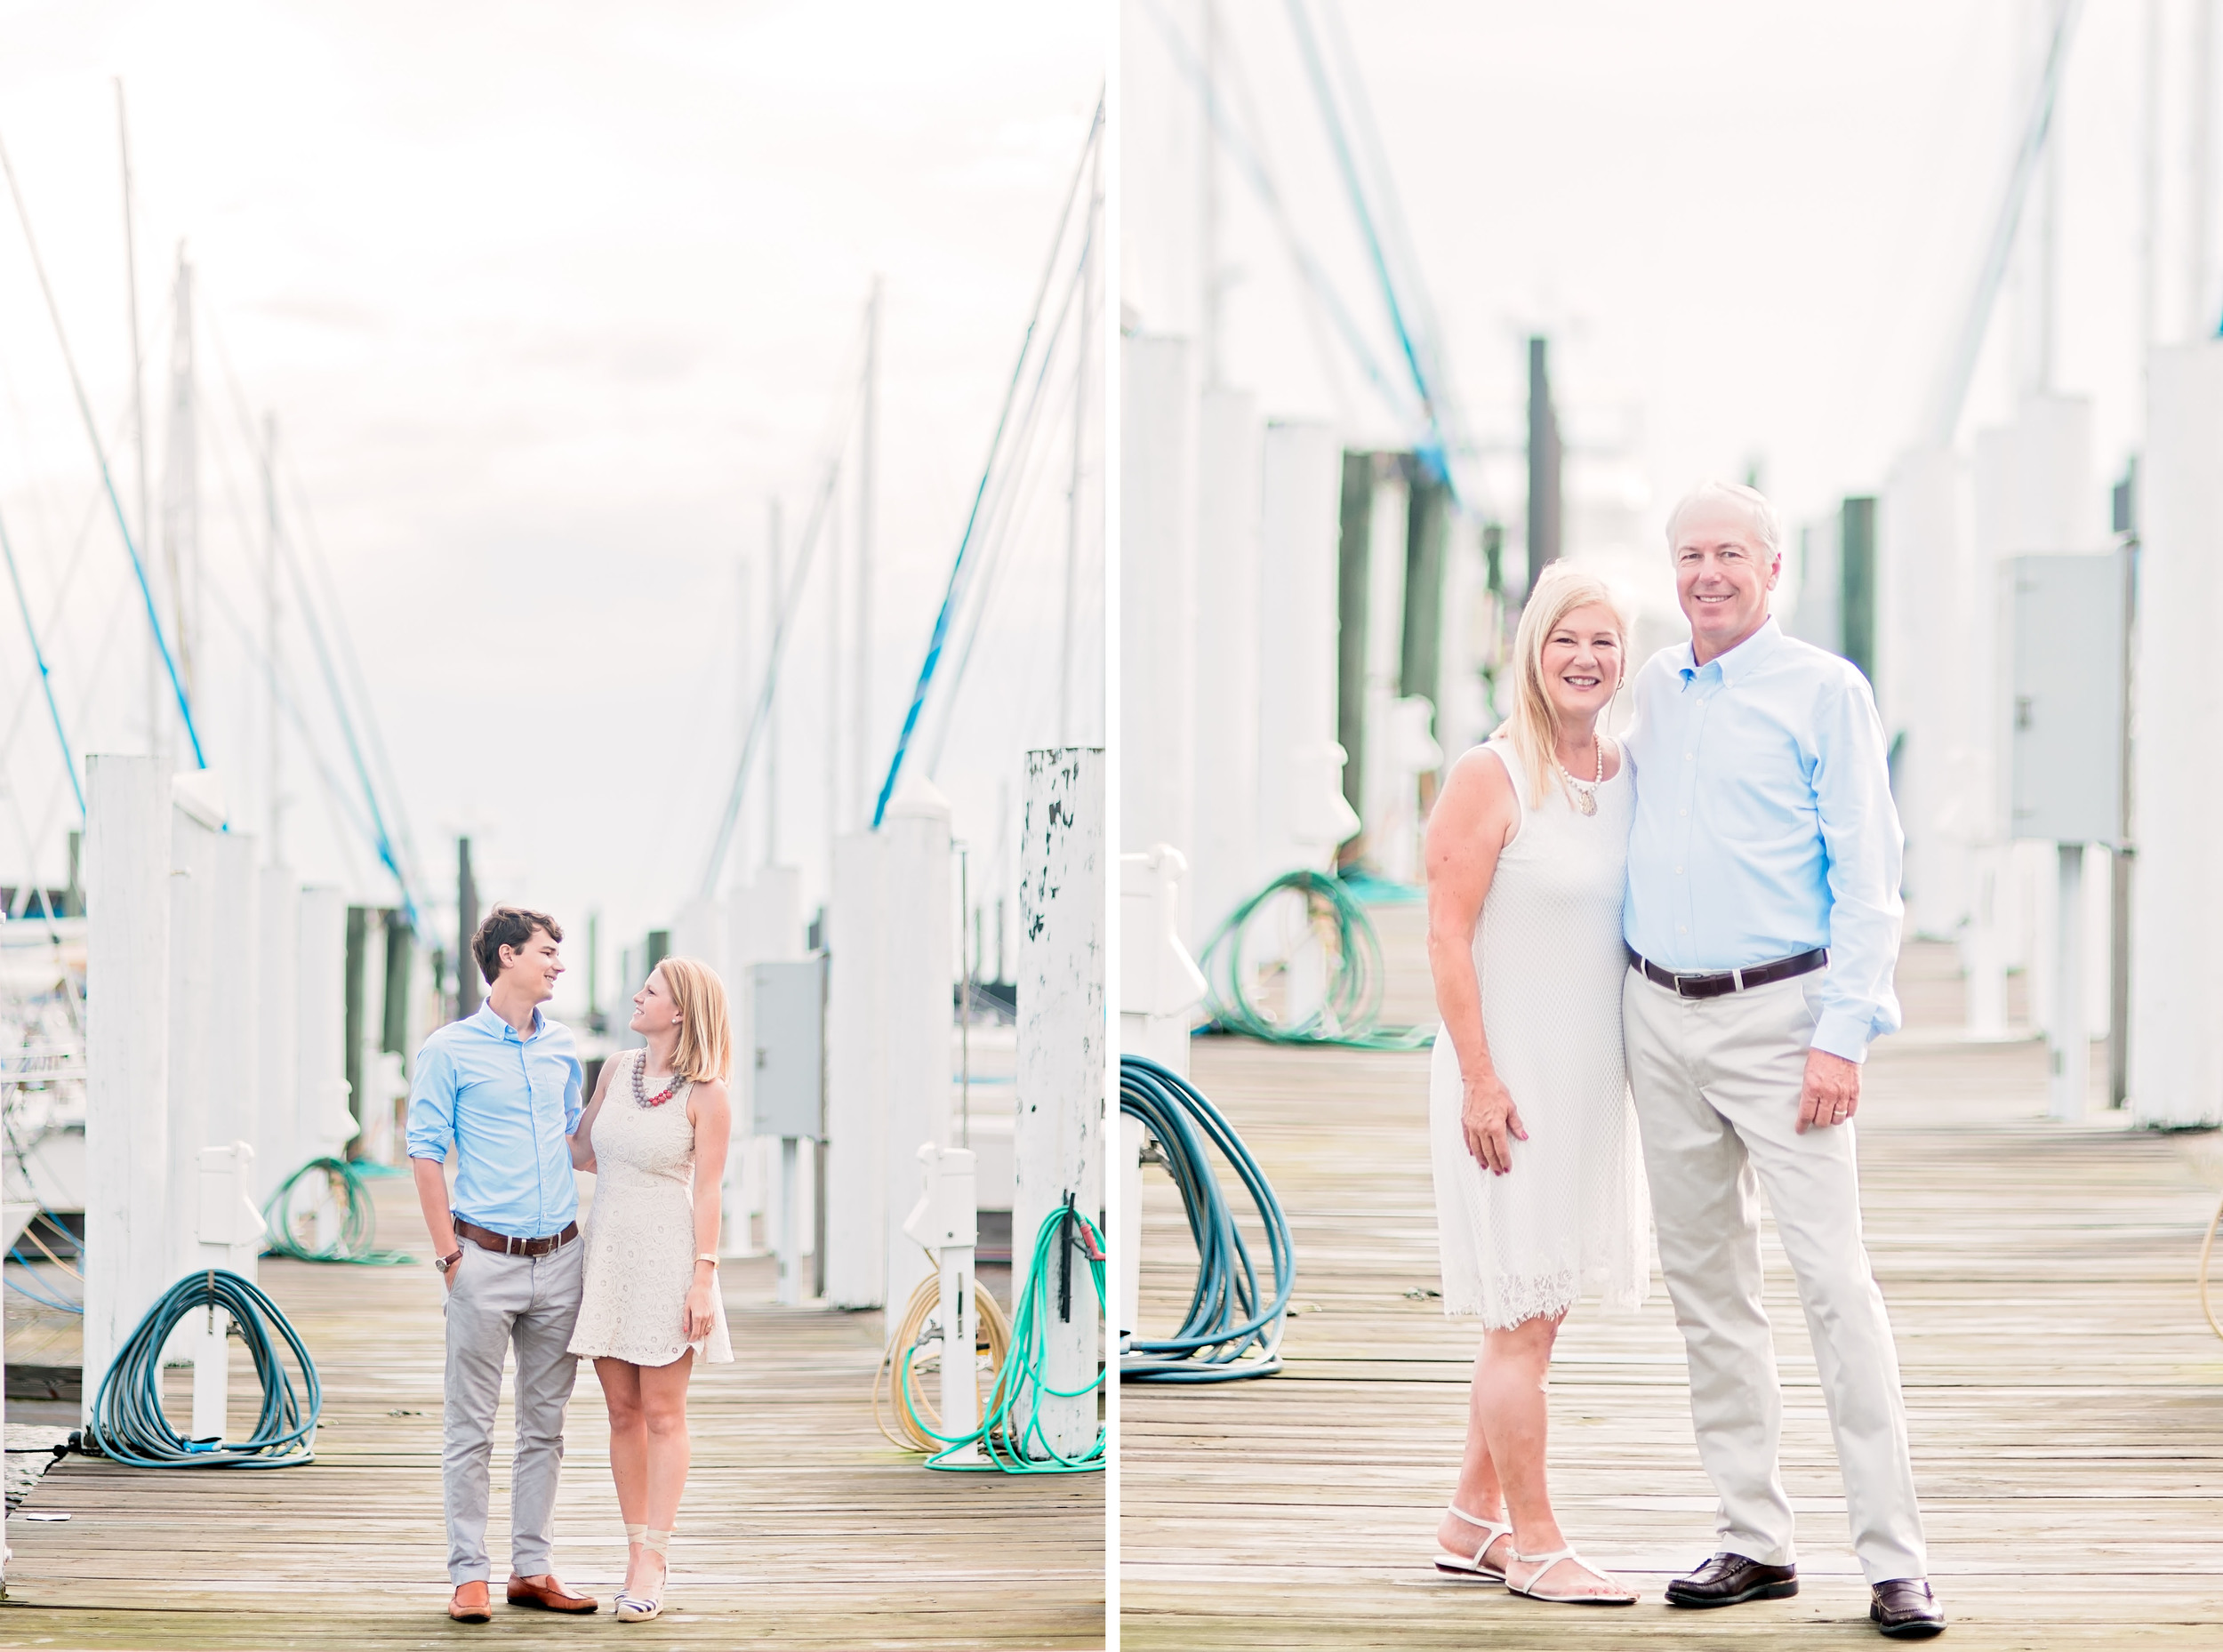 Keenan Family- Pharris Photography- Texas Photographer- Houston- Family Session- Family Portraits- Sailing Boats